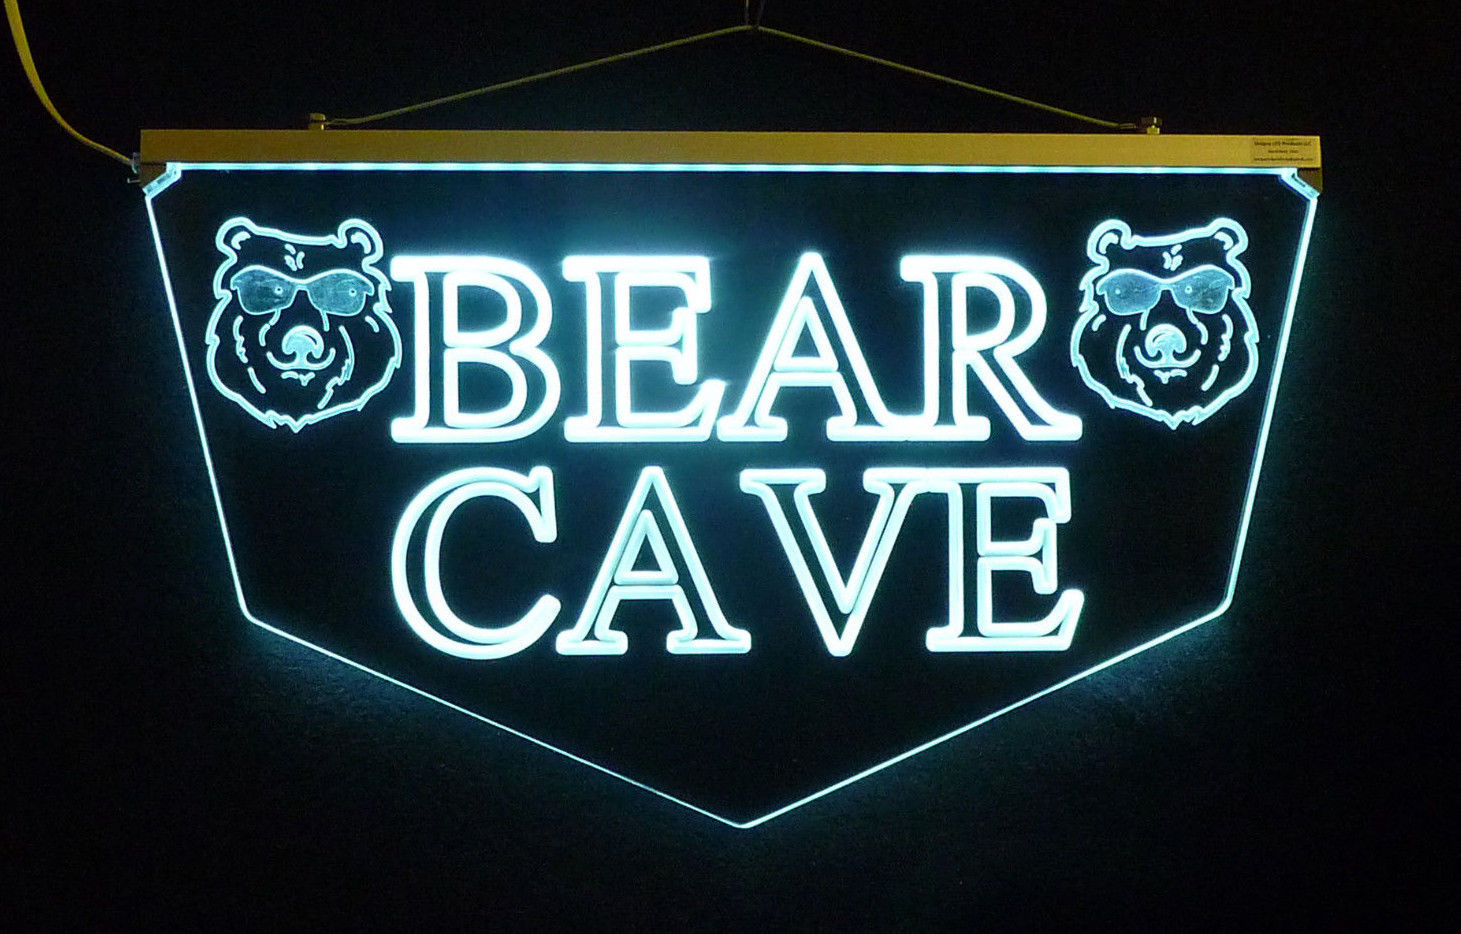 Personalized Custom LED Sign Man Cave Sign, Pub Sign, Bar Sign-Gift image 2